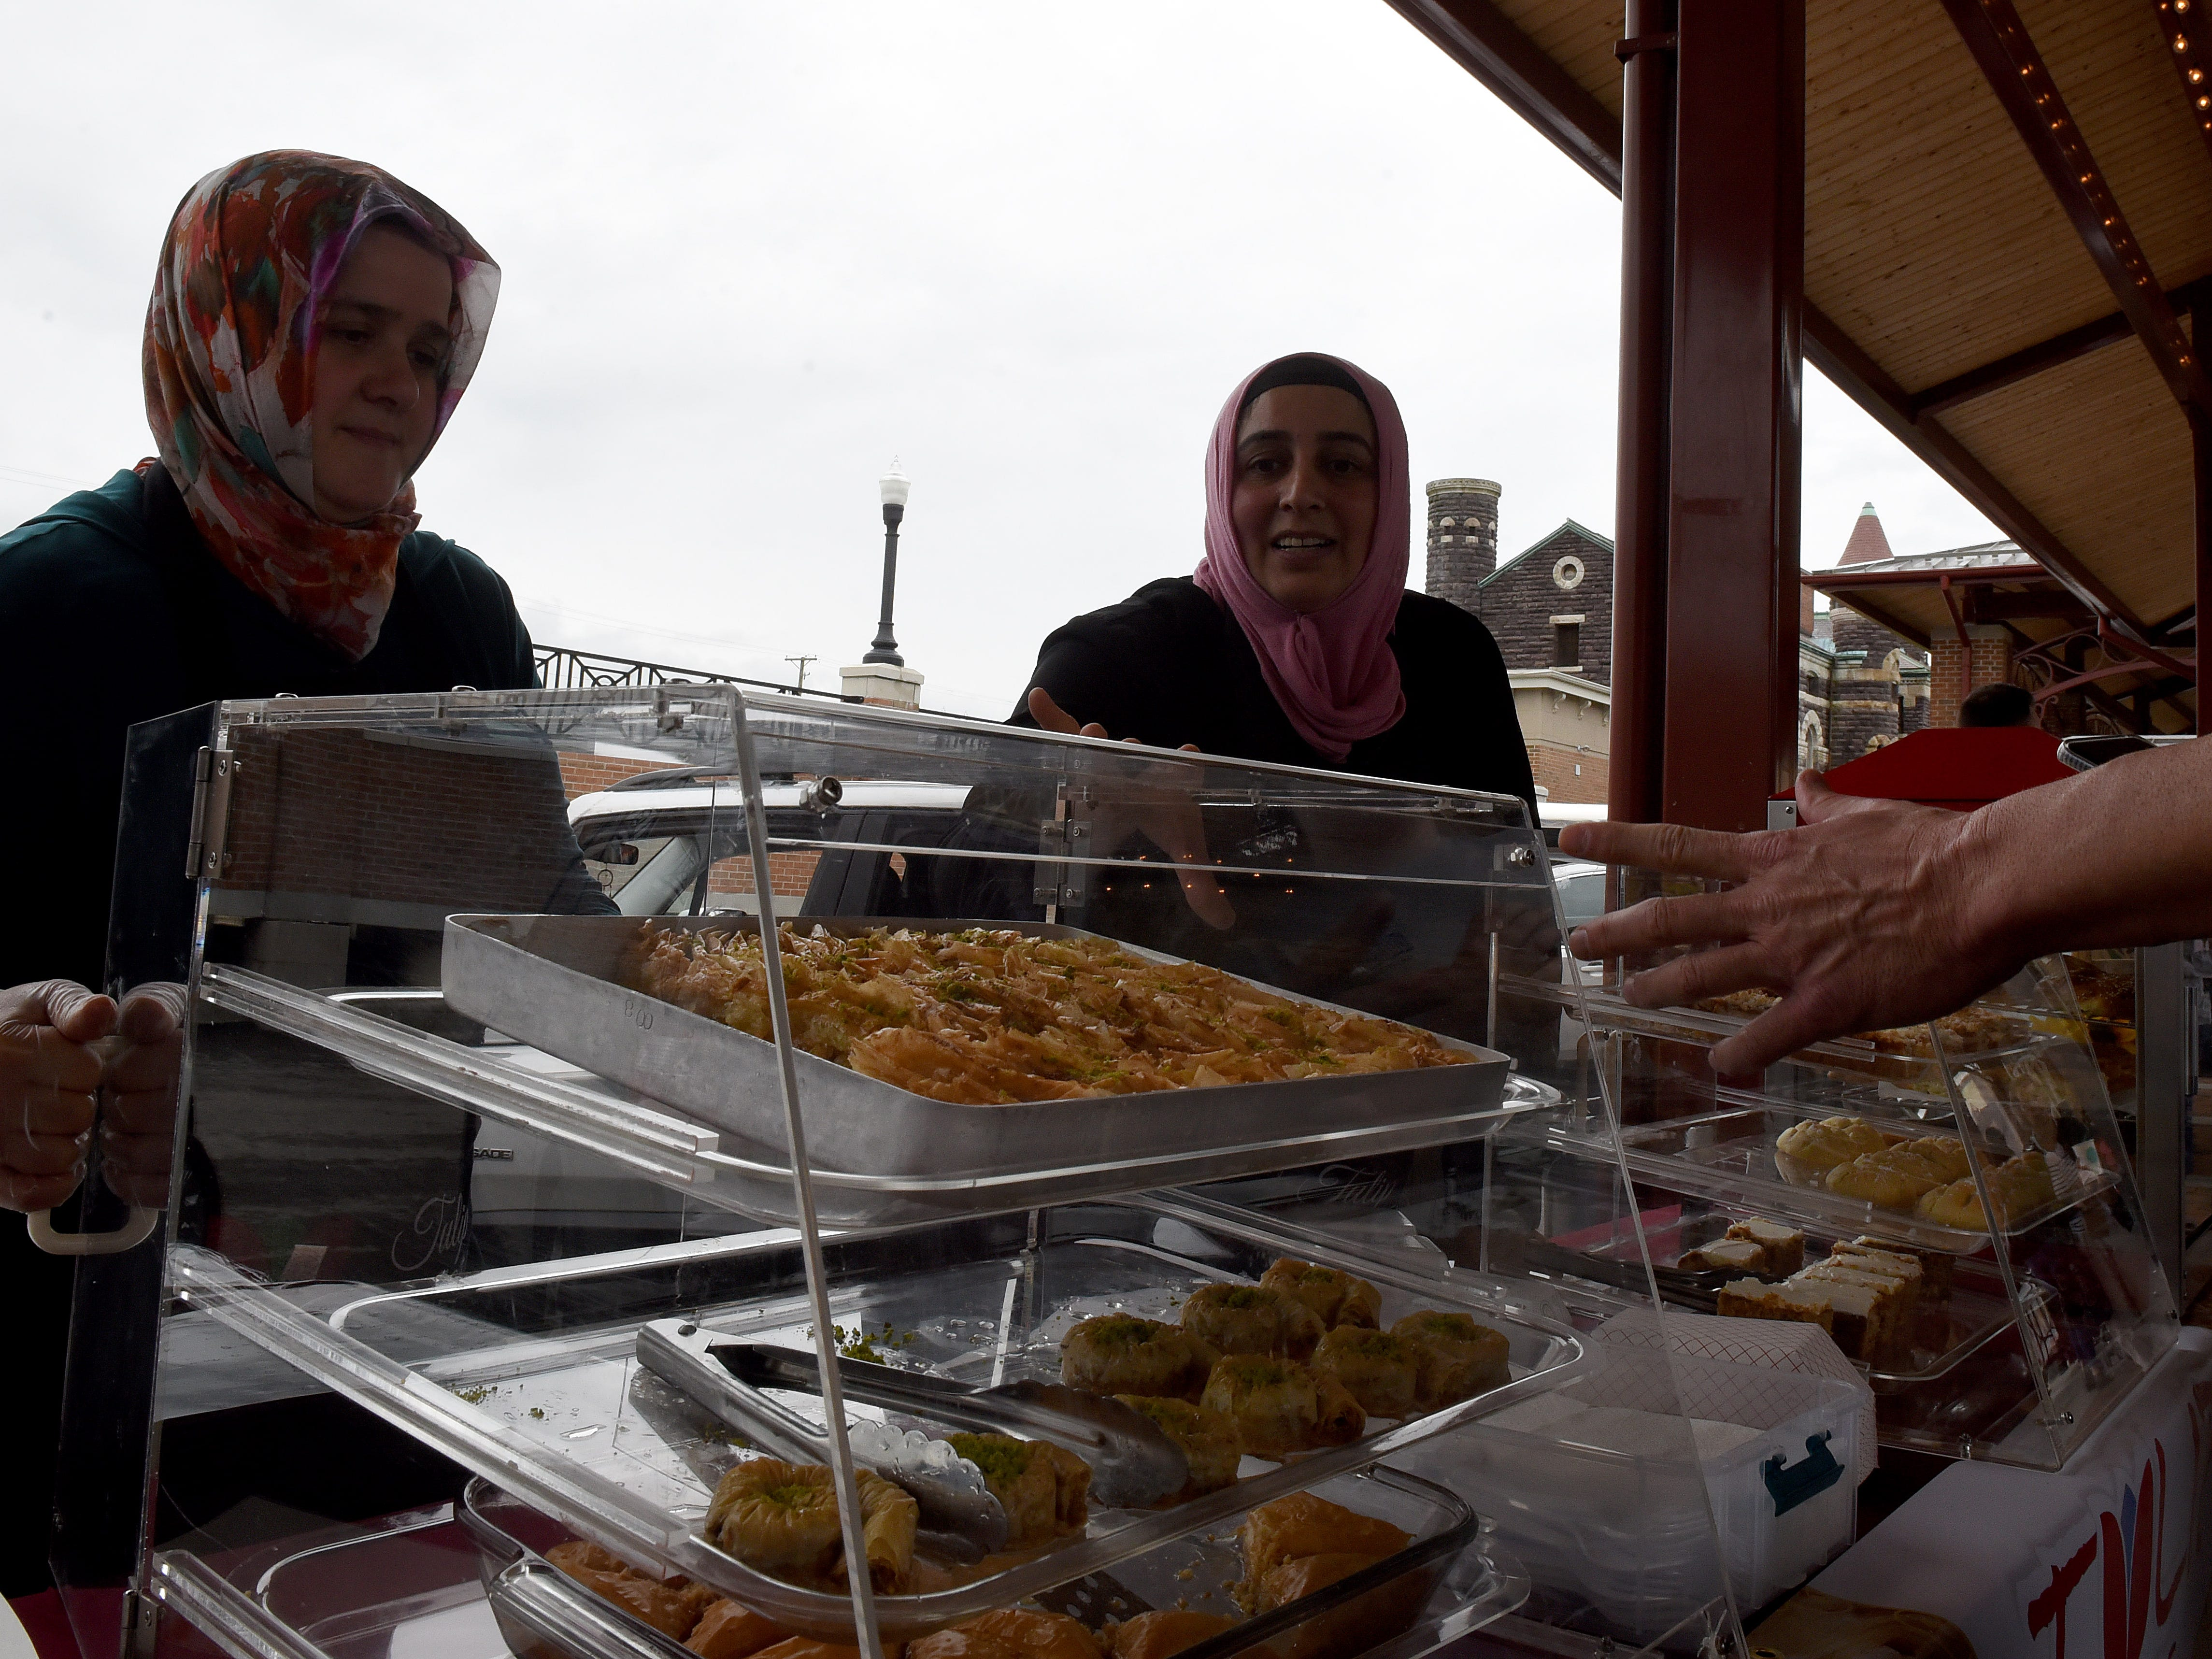 Hanife Evliyaoglu and Hatch Kucuker sell baklava and other Turkish foods and deserts with Tulip Cafe during The Canal Market District's kicked off for its fourth season on Friday, May 3, 2019.